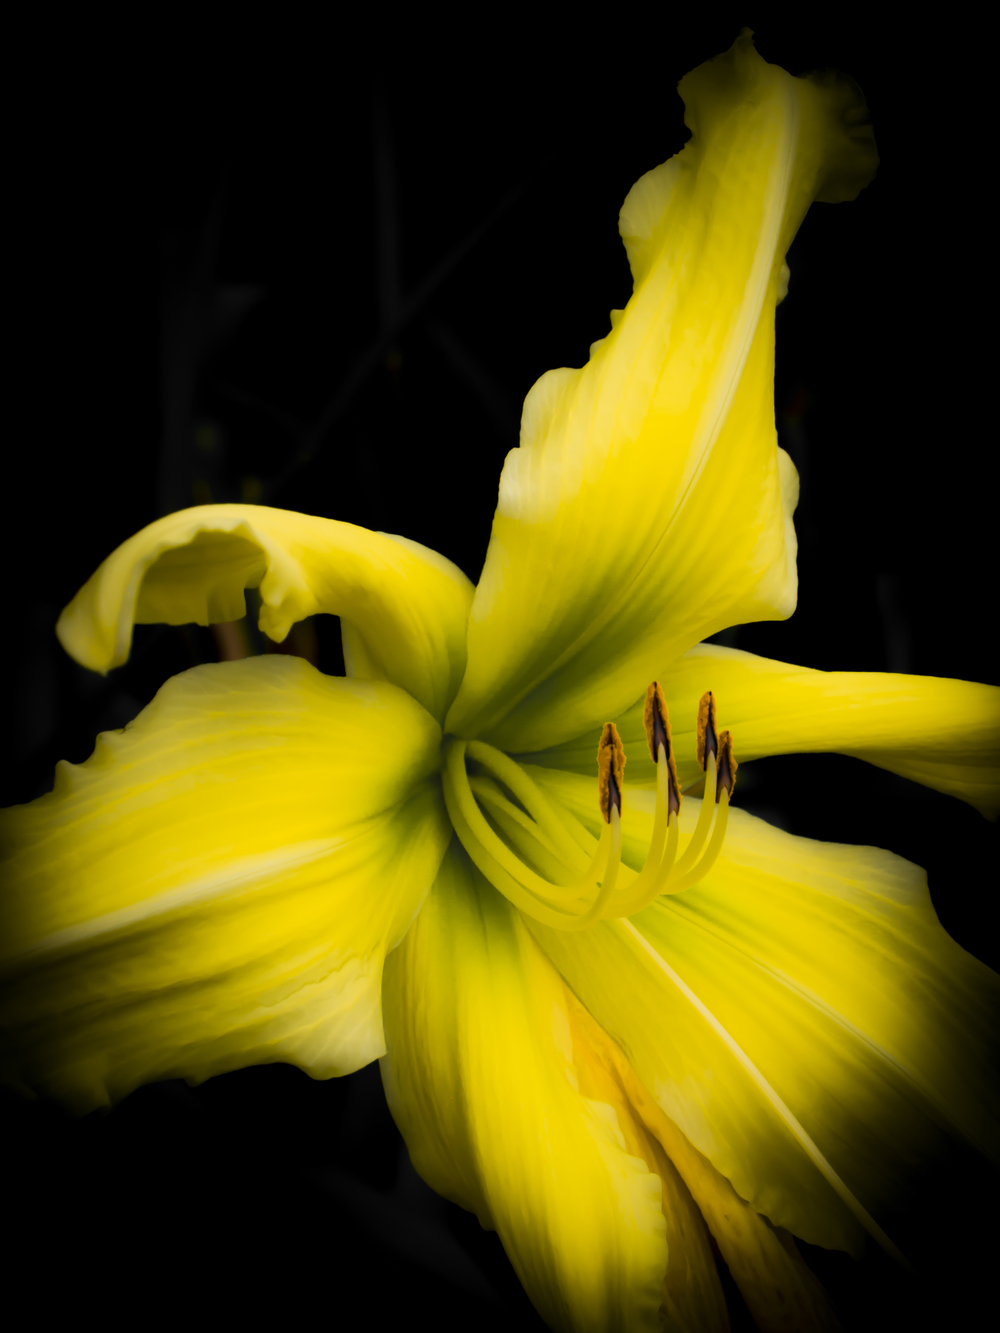 Brocaded Gown Daylily.JPG